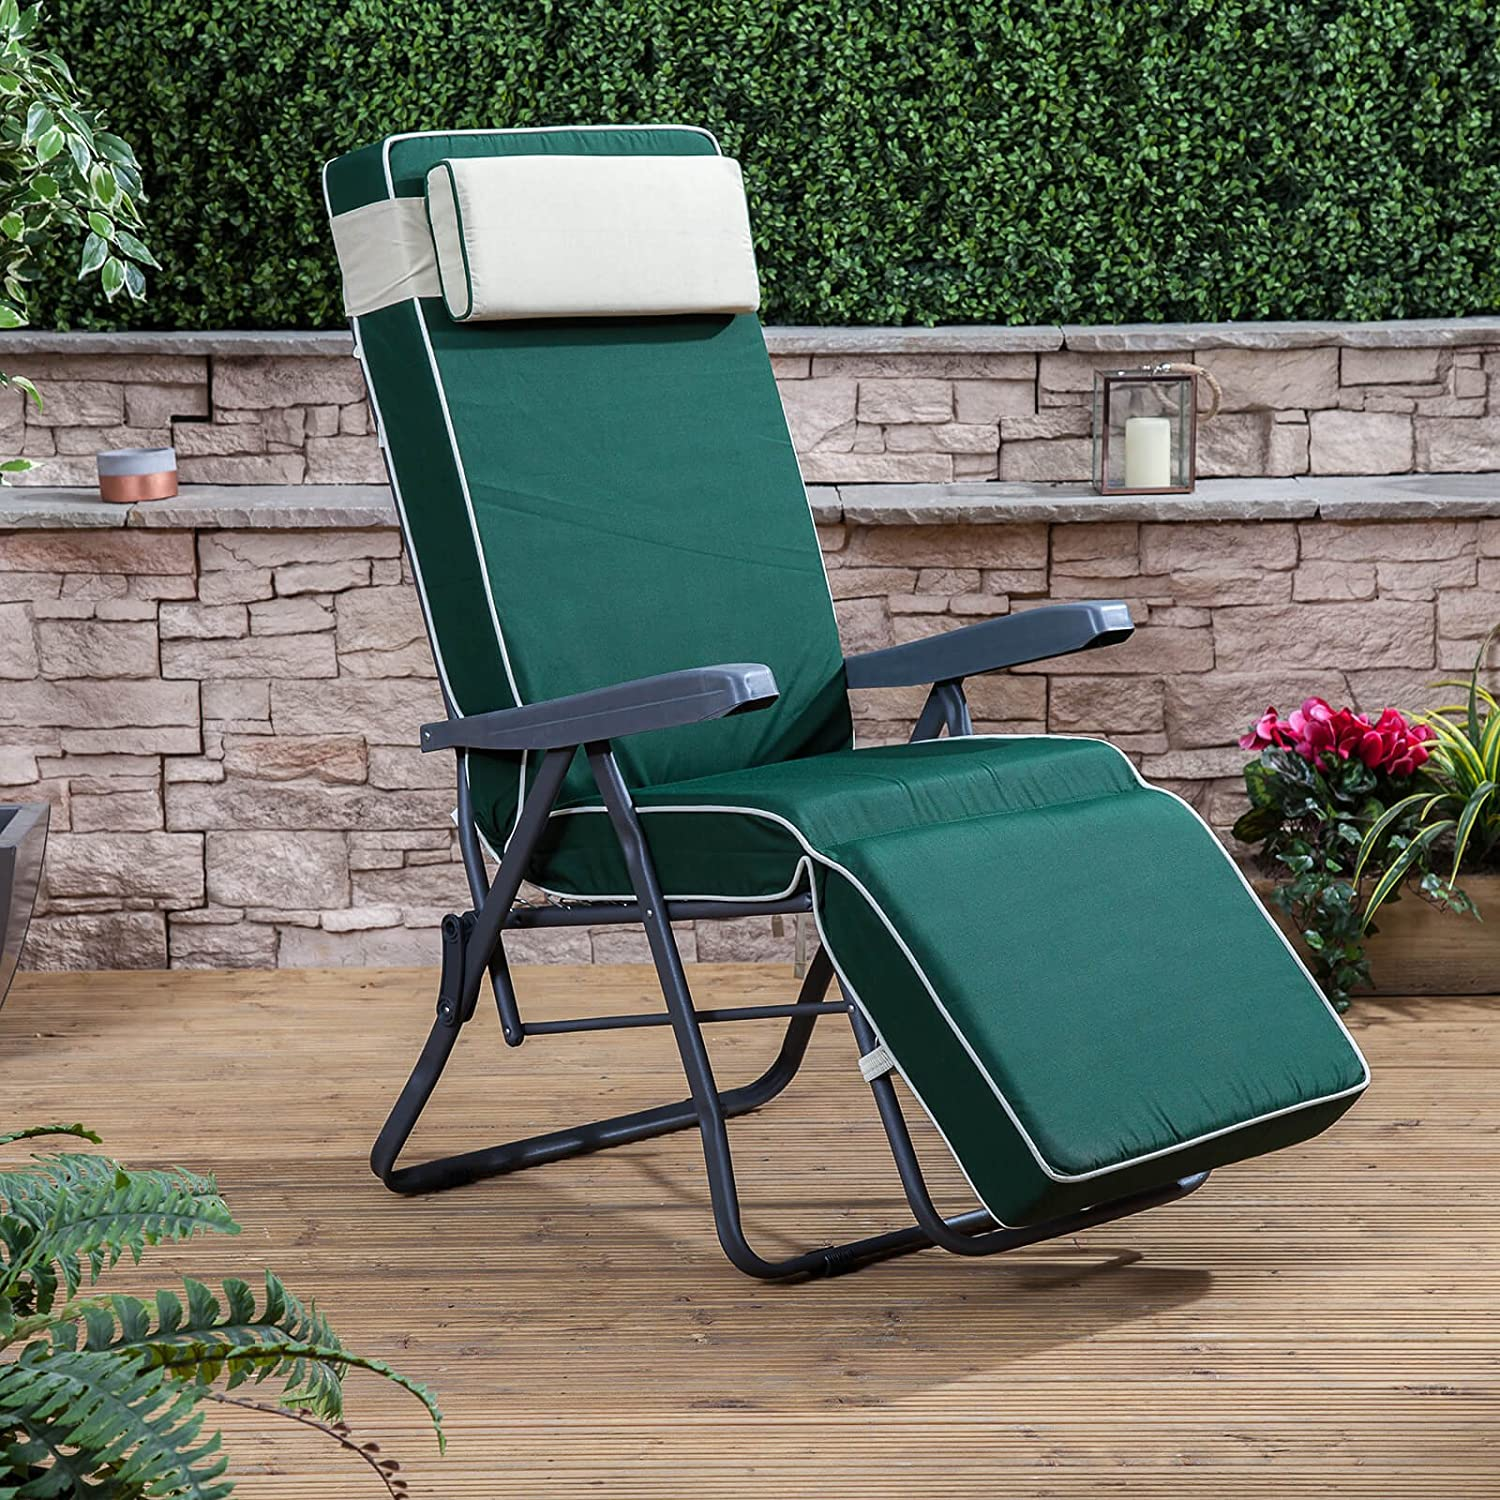 d3a473d8c81e Alfresia Garden Reclining Relaxer Chair - Charcoal Adjustable Multi  Position Foldable Frame with Luxury Cushion Choice of Colours (Green):  Amazon.co.uk: ...